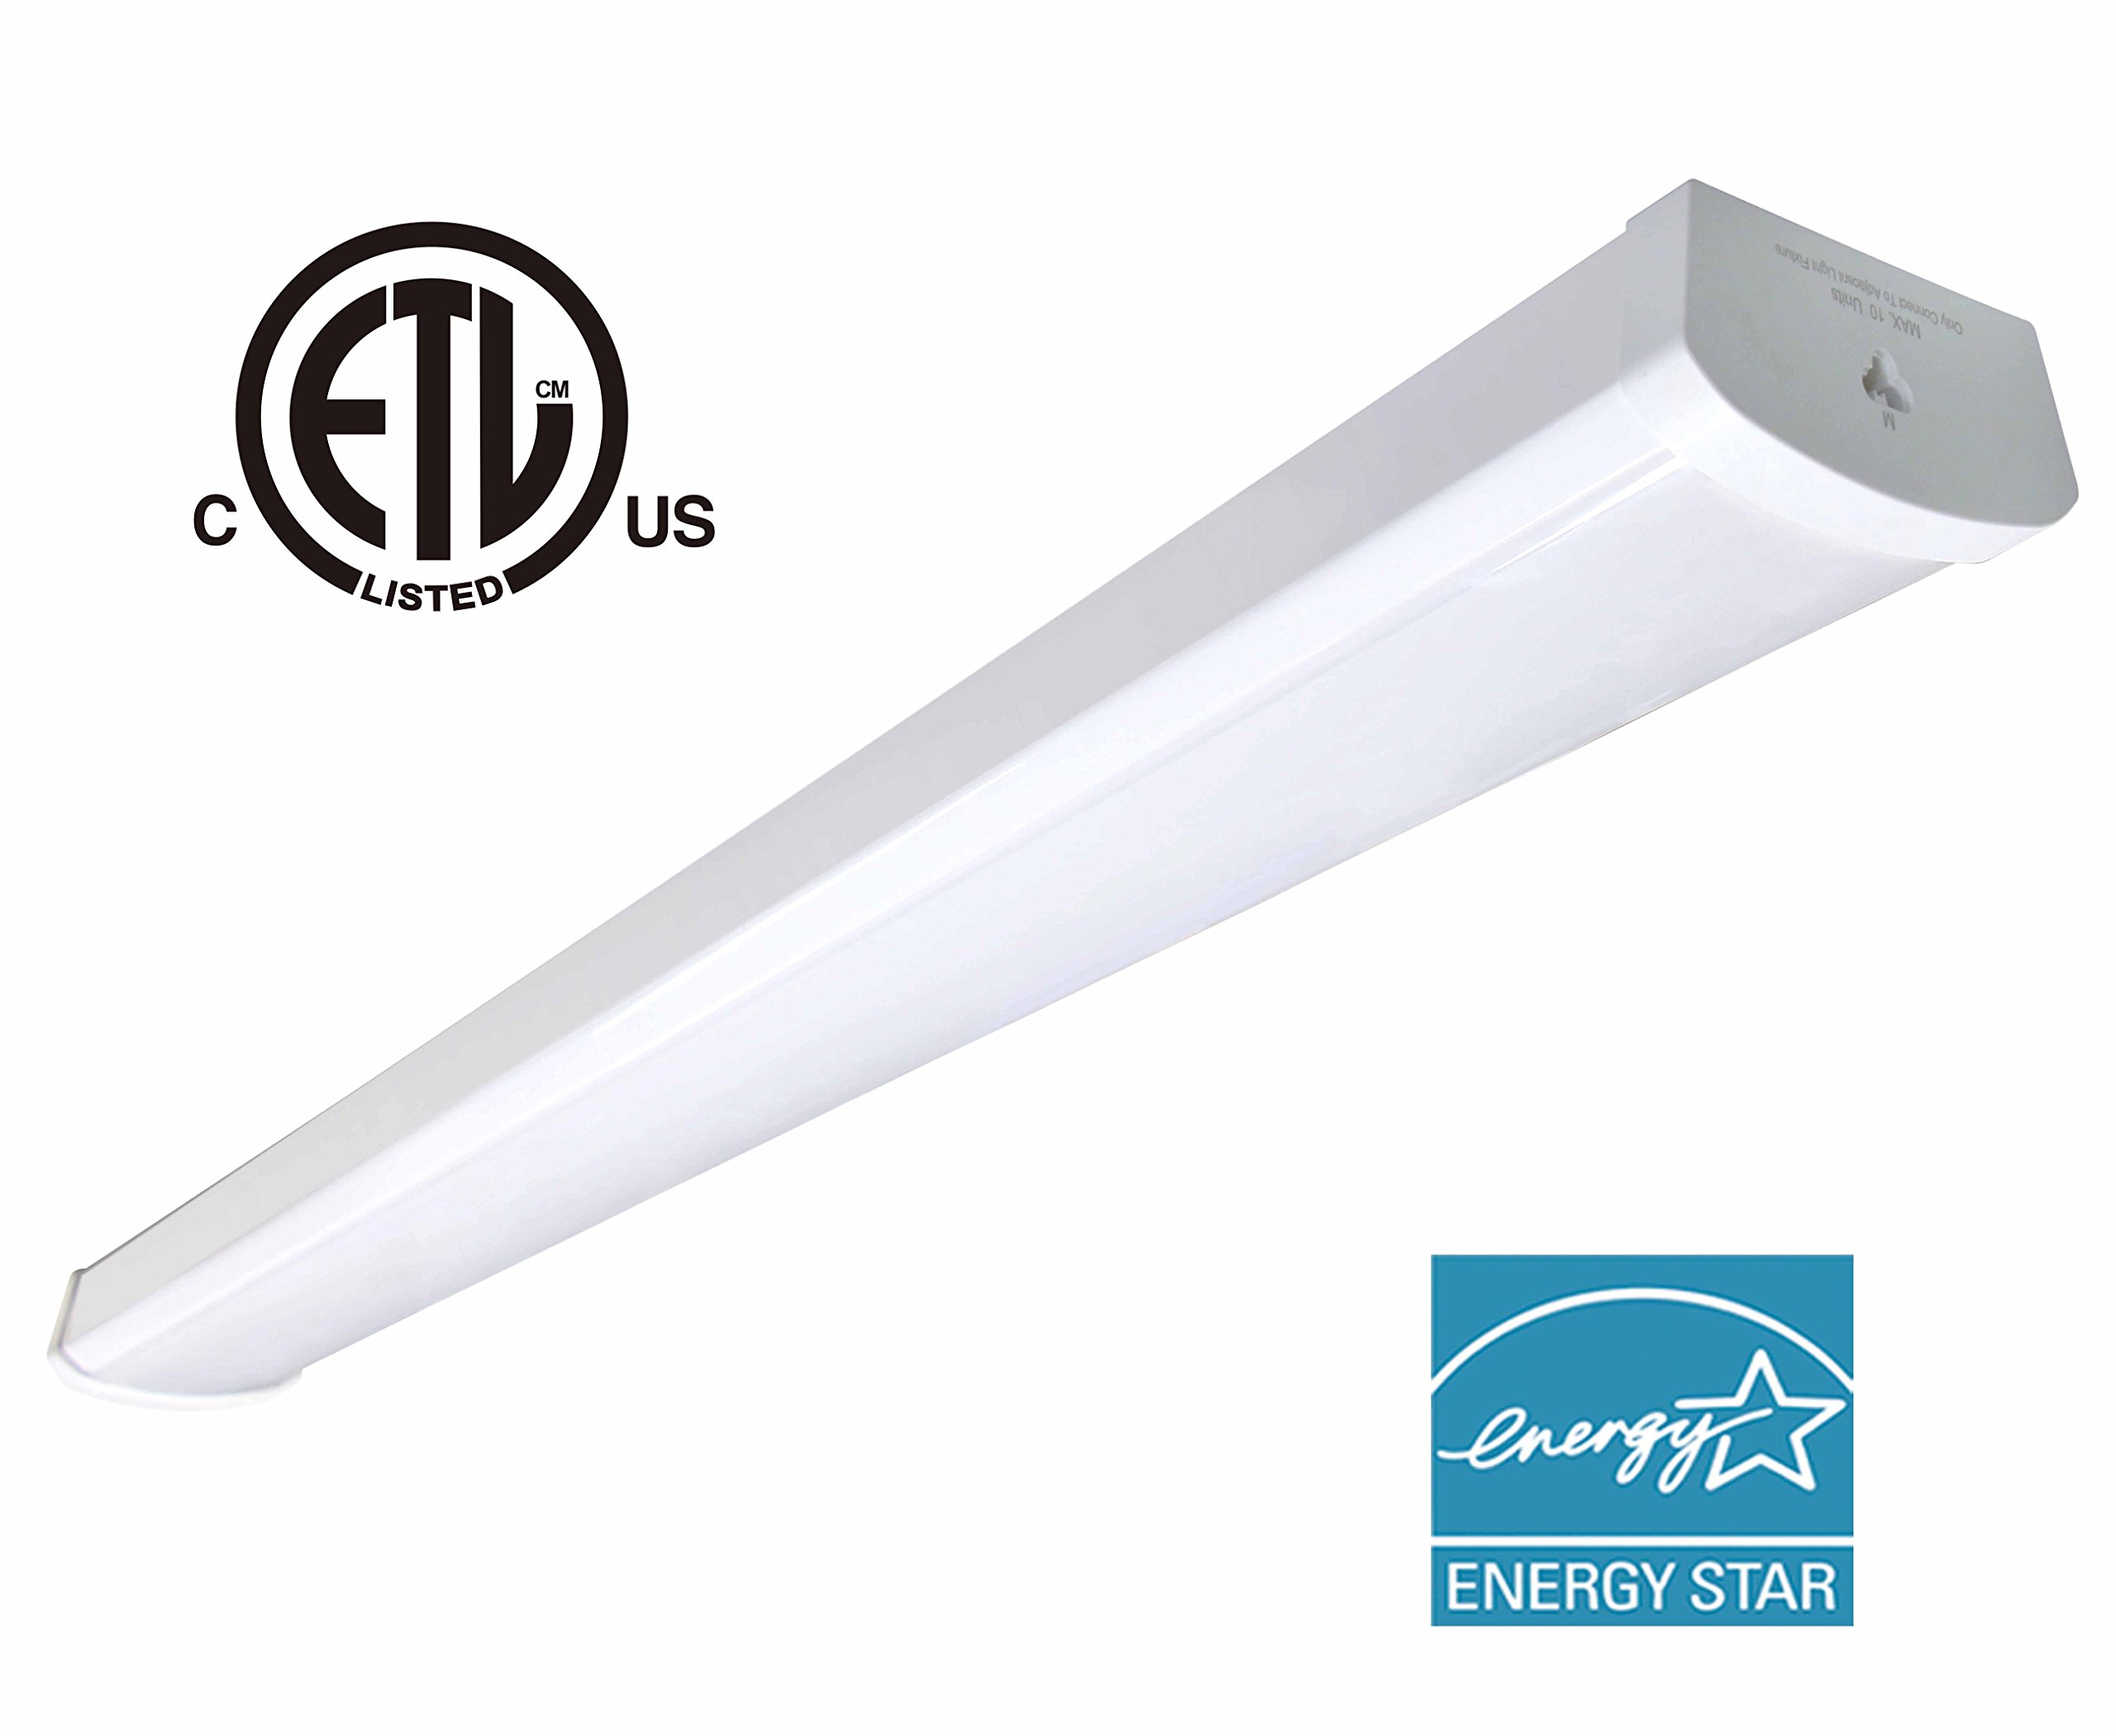 48W Linkable LED Wraparound Flushmount Light 4ft,led Shop Light,4000Lumens 5000K, ETL and Energy Star Certified,LED Wrap Light,LED Linear Indoor Lights,LED Puff Light,LED Ceiling Light,50K1pk by OOOLED (Image #1)